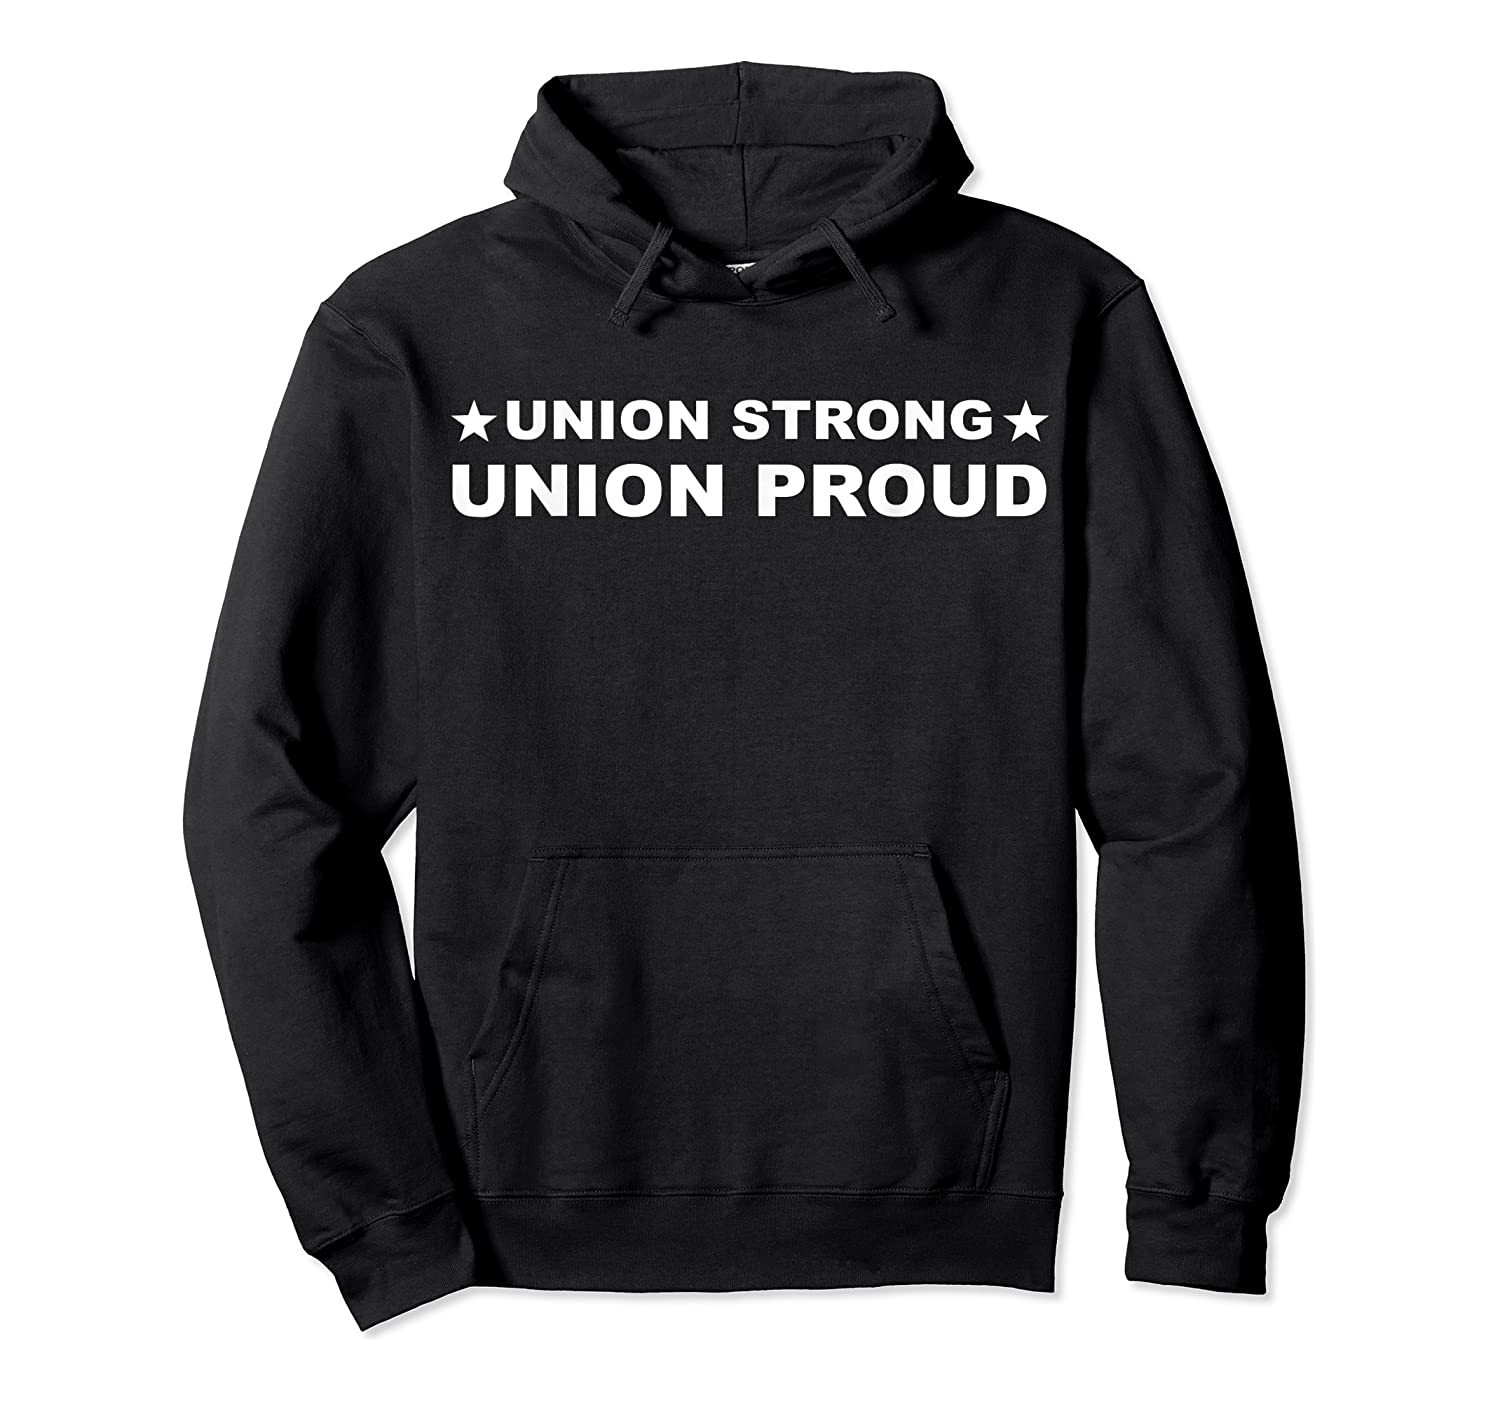 Union Strong Union Proud Union Worker Shirts Unisex Pullover Hoodie